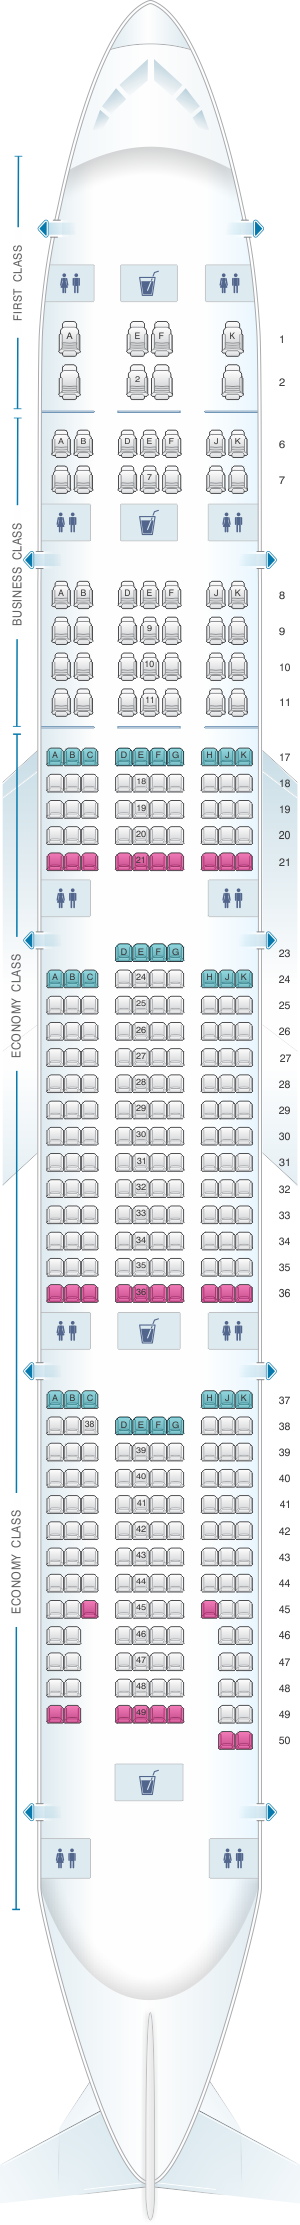 Seat map for Emirates Boeing B777 300ER three class private suite